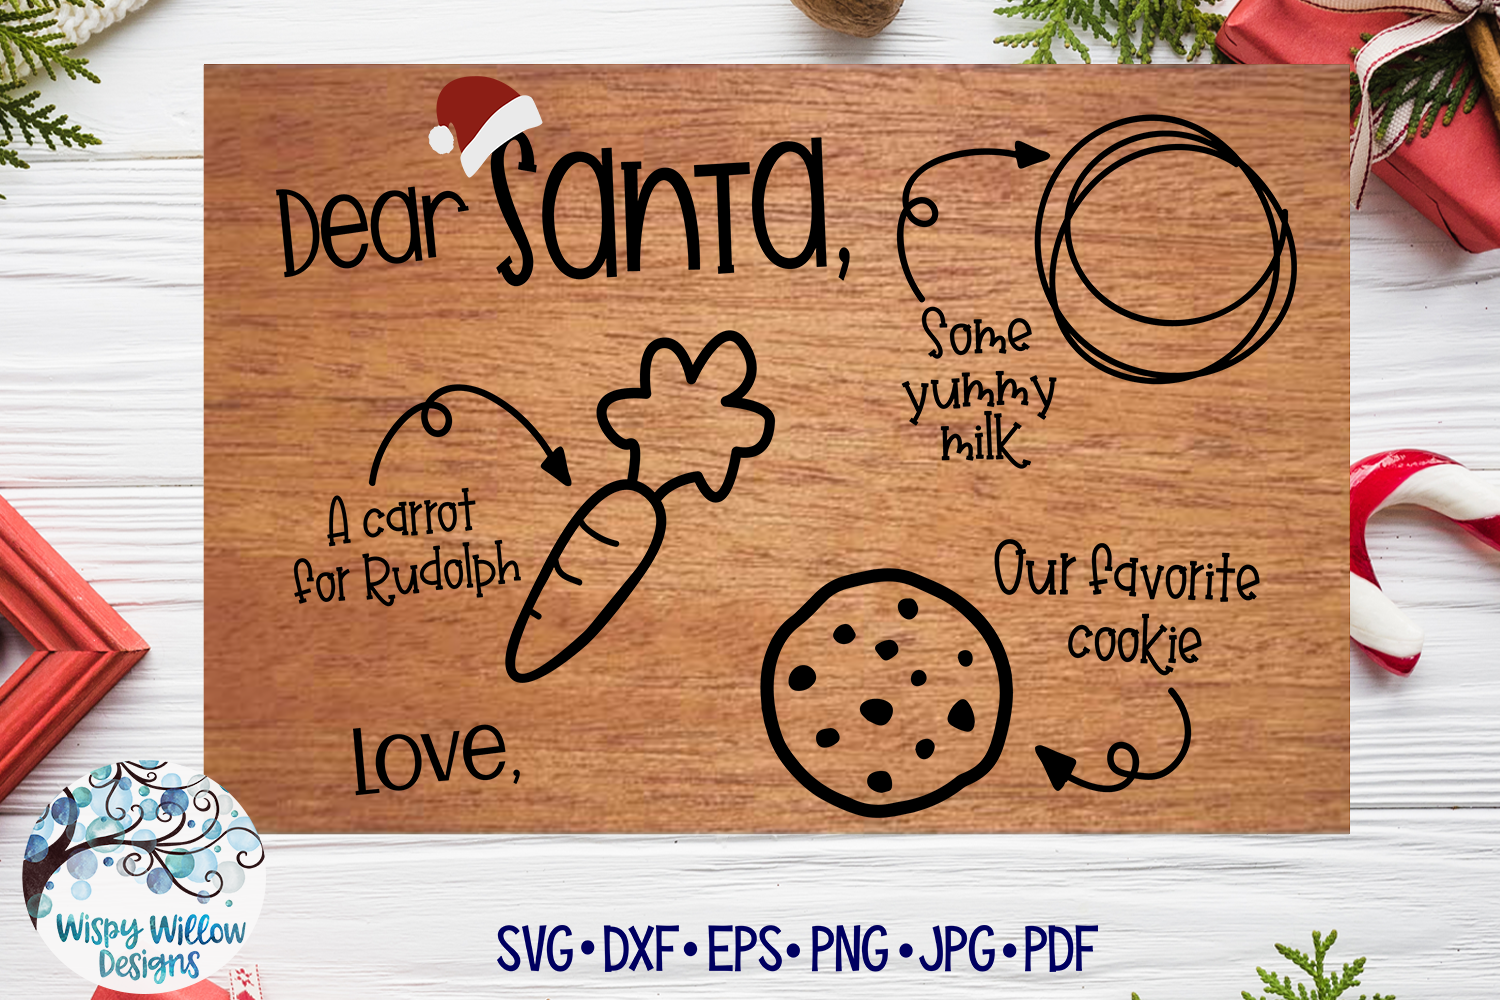 Download Free Christmas Eve Santa Tray Graphic By Wispywillowdesigns for Cricut Explore, Silhouette and other cutting machines.